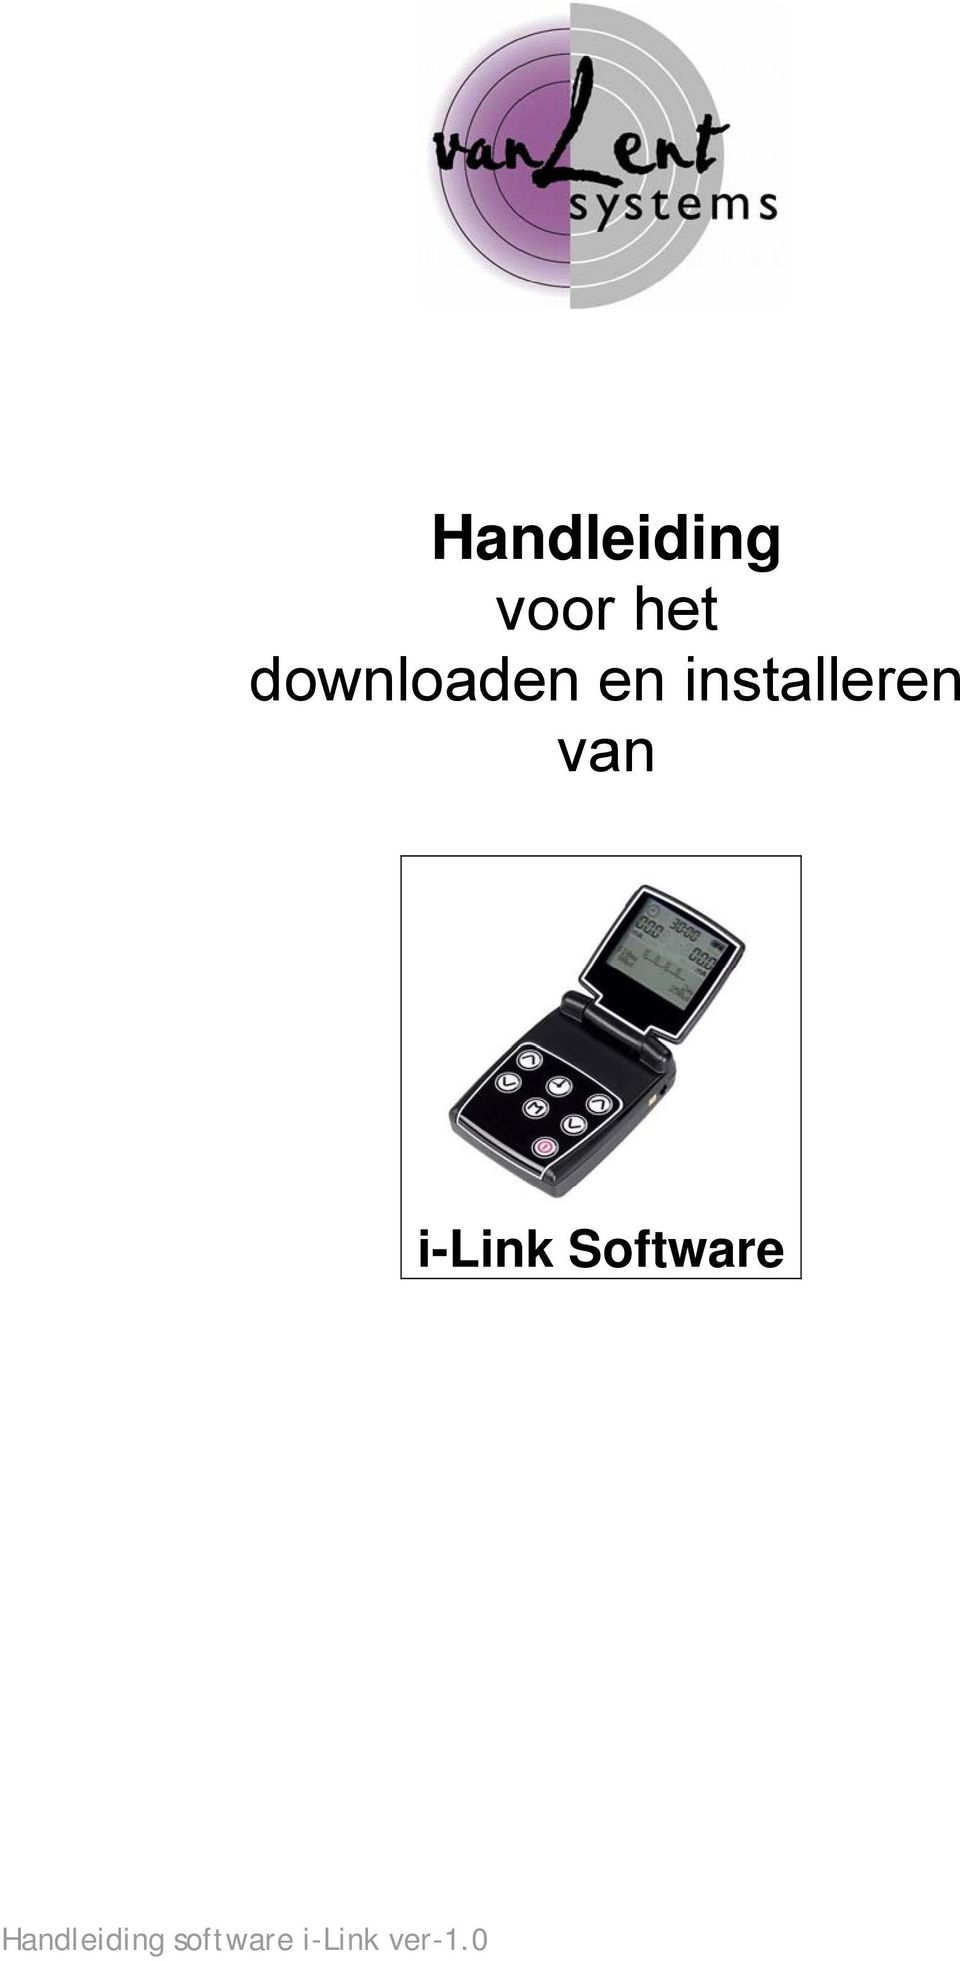 van i-link Software